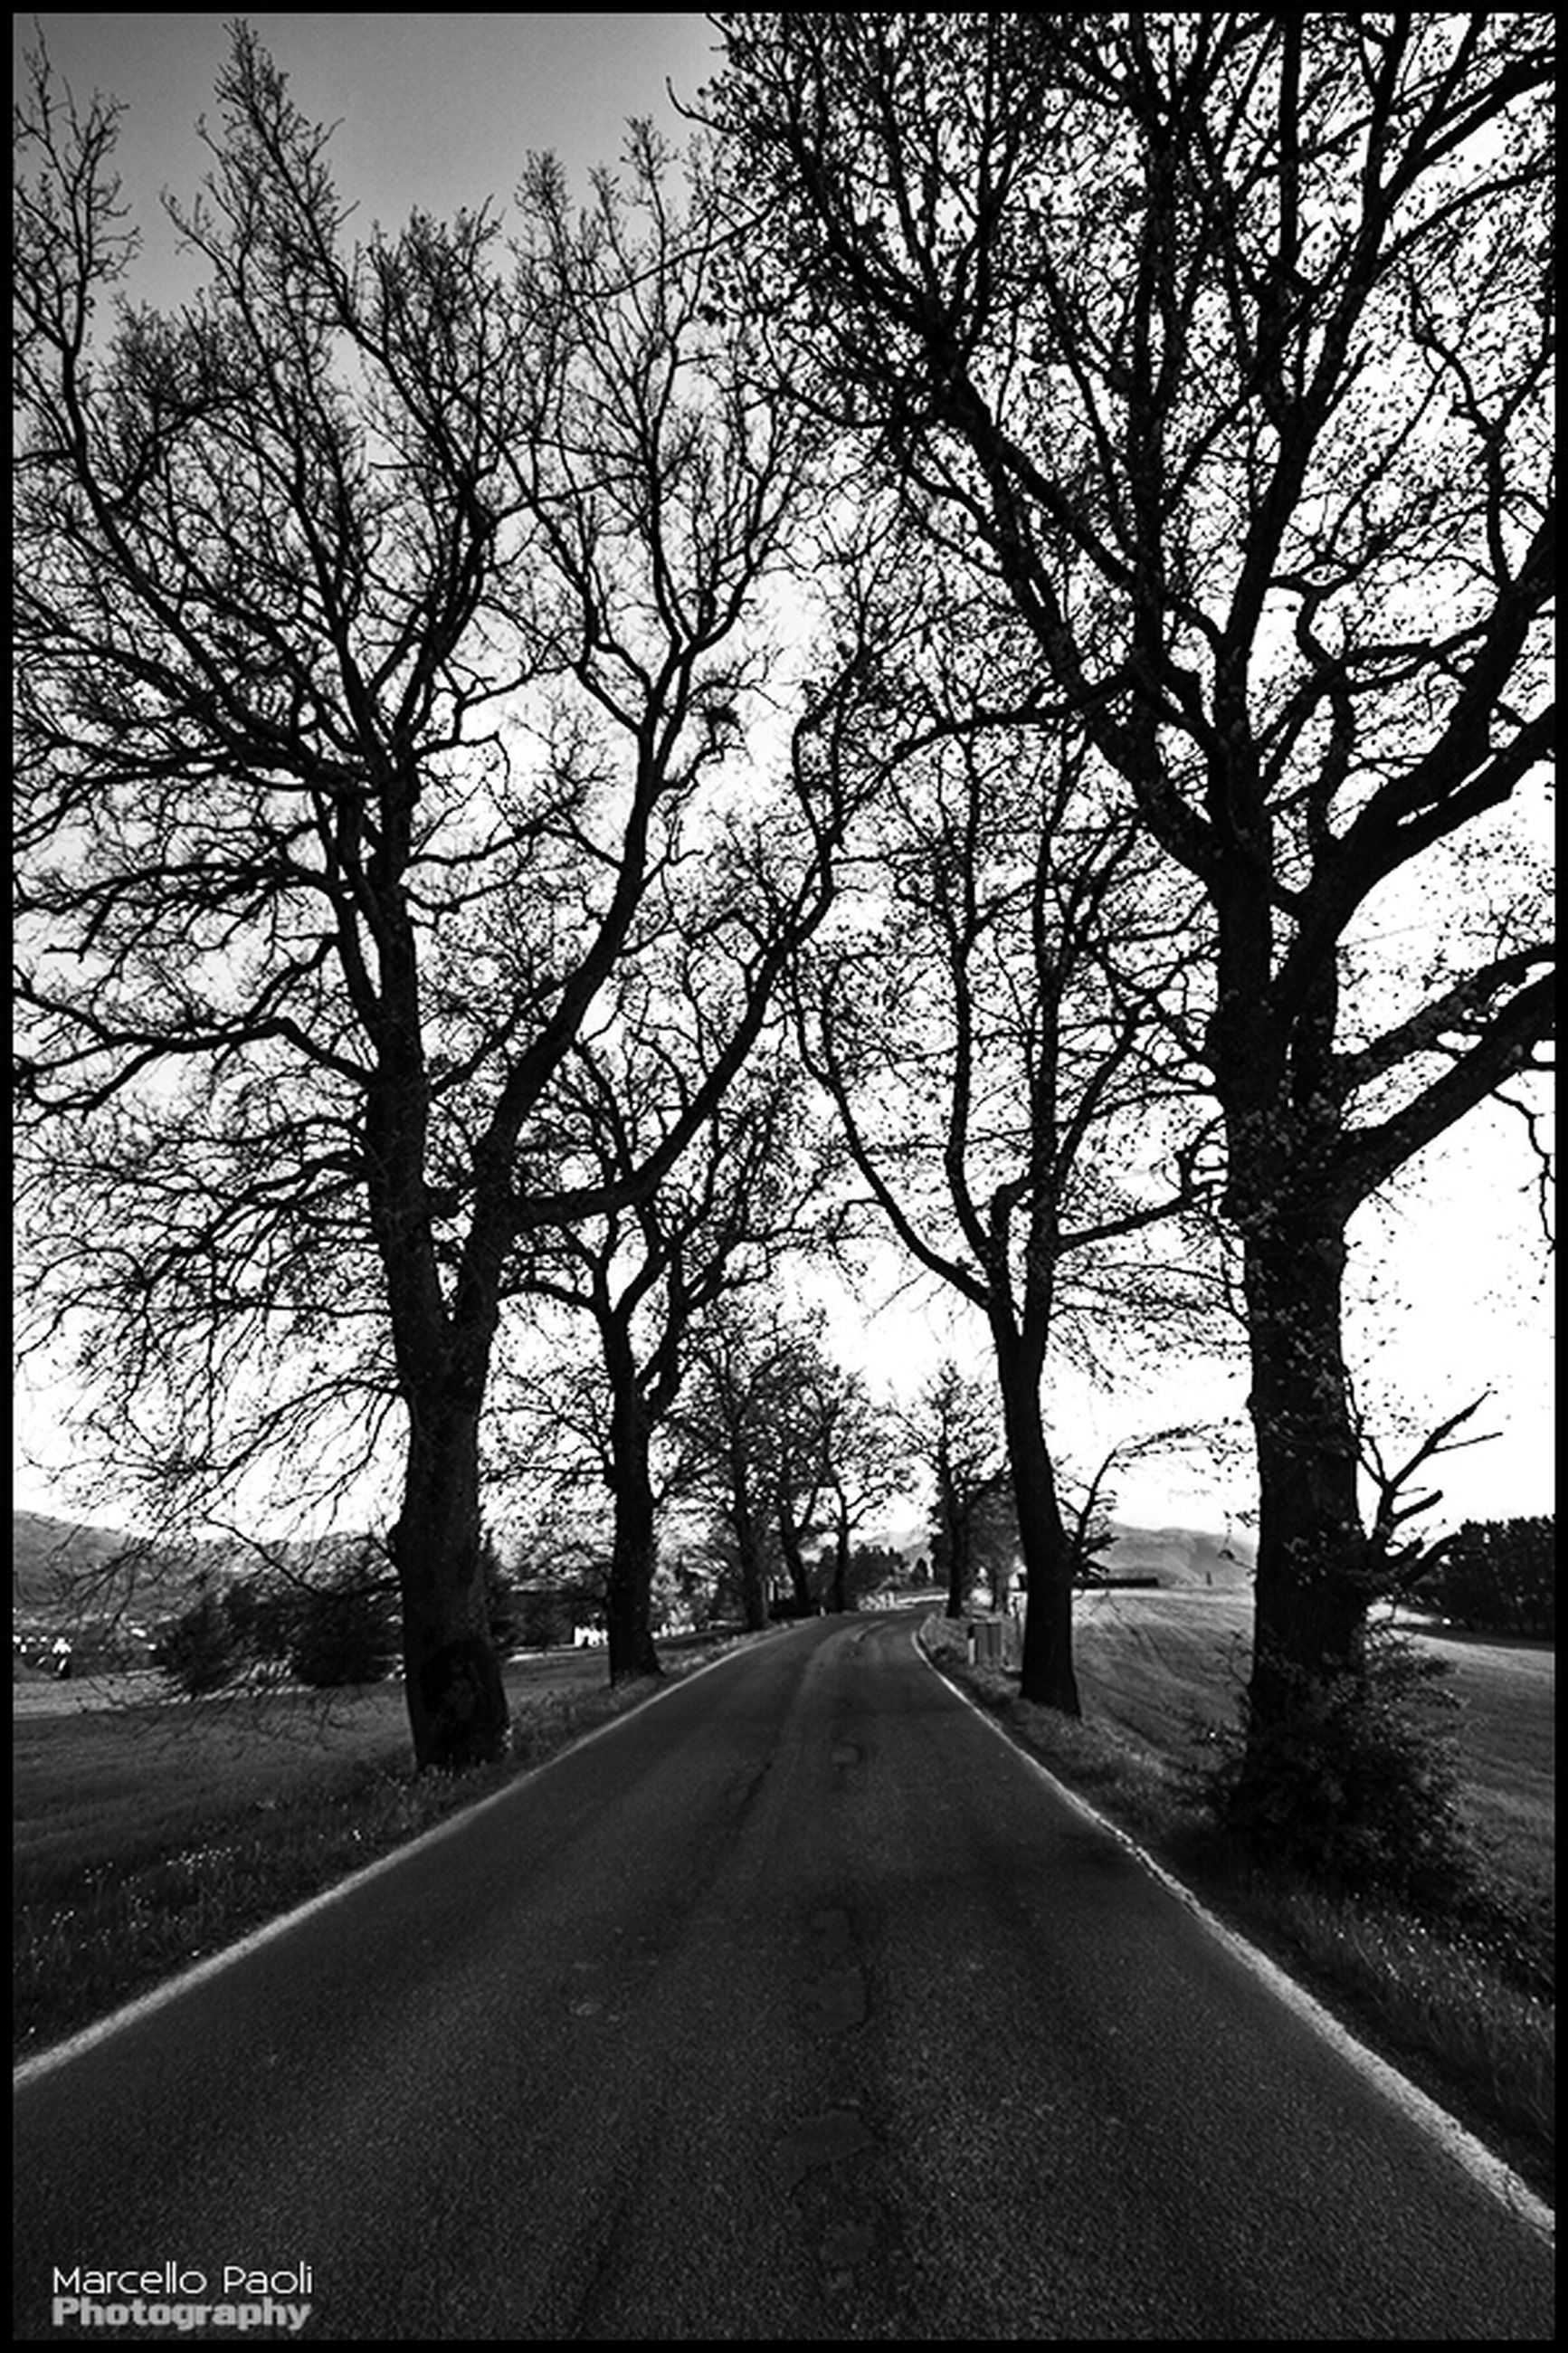 the way forward, tree, road, transportation, bare tree, diminishing perspective, vanishing point, road marking, country road, tranquility, empty road, sky, branch, empty, tranquil scene, nature, transfer print, long, treelined, street